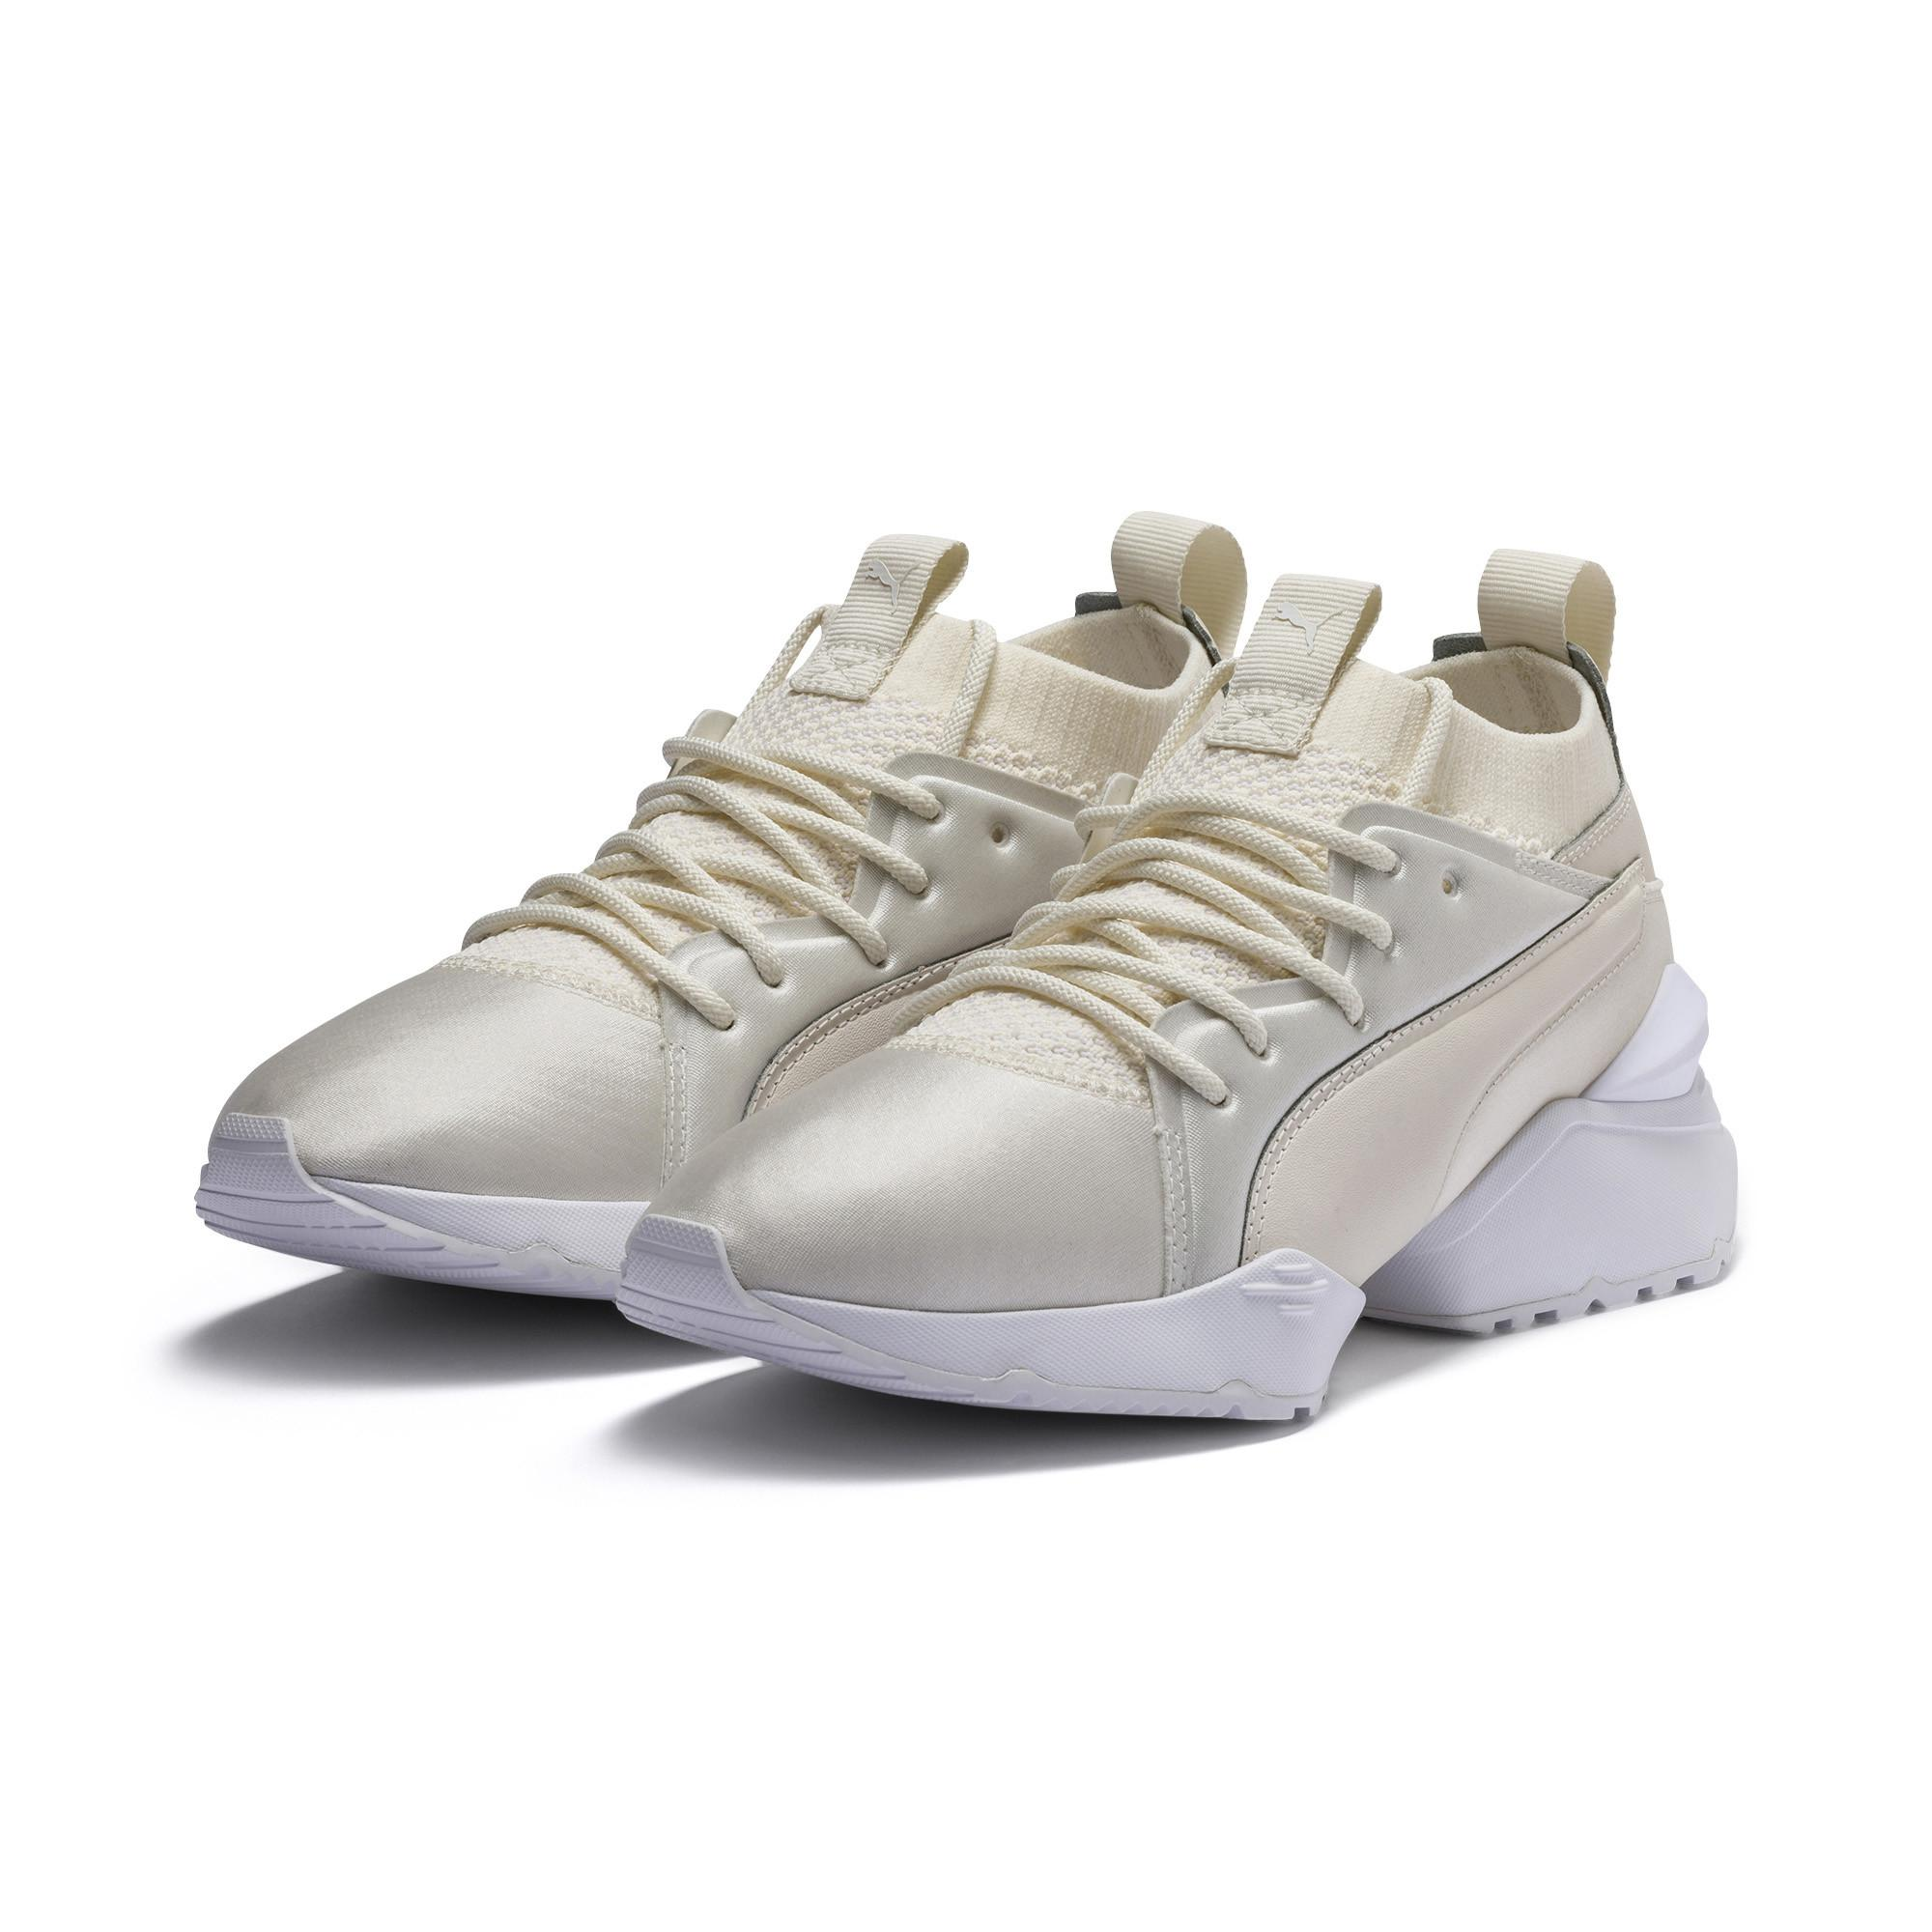 229b08824400 PUMA - White Muse Maia Knit Premium Women s Shoes - Lyst. View fullscreen